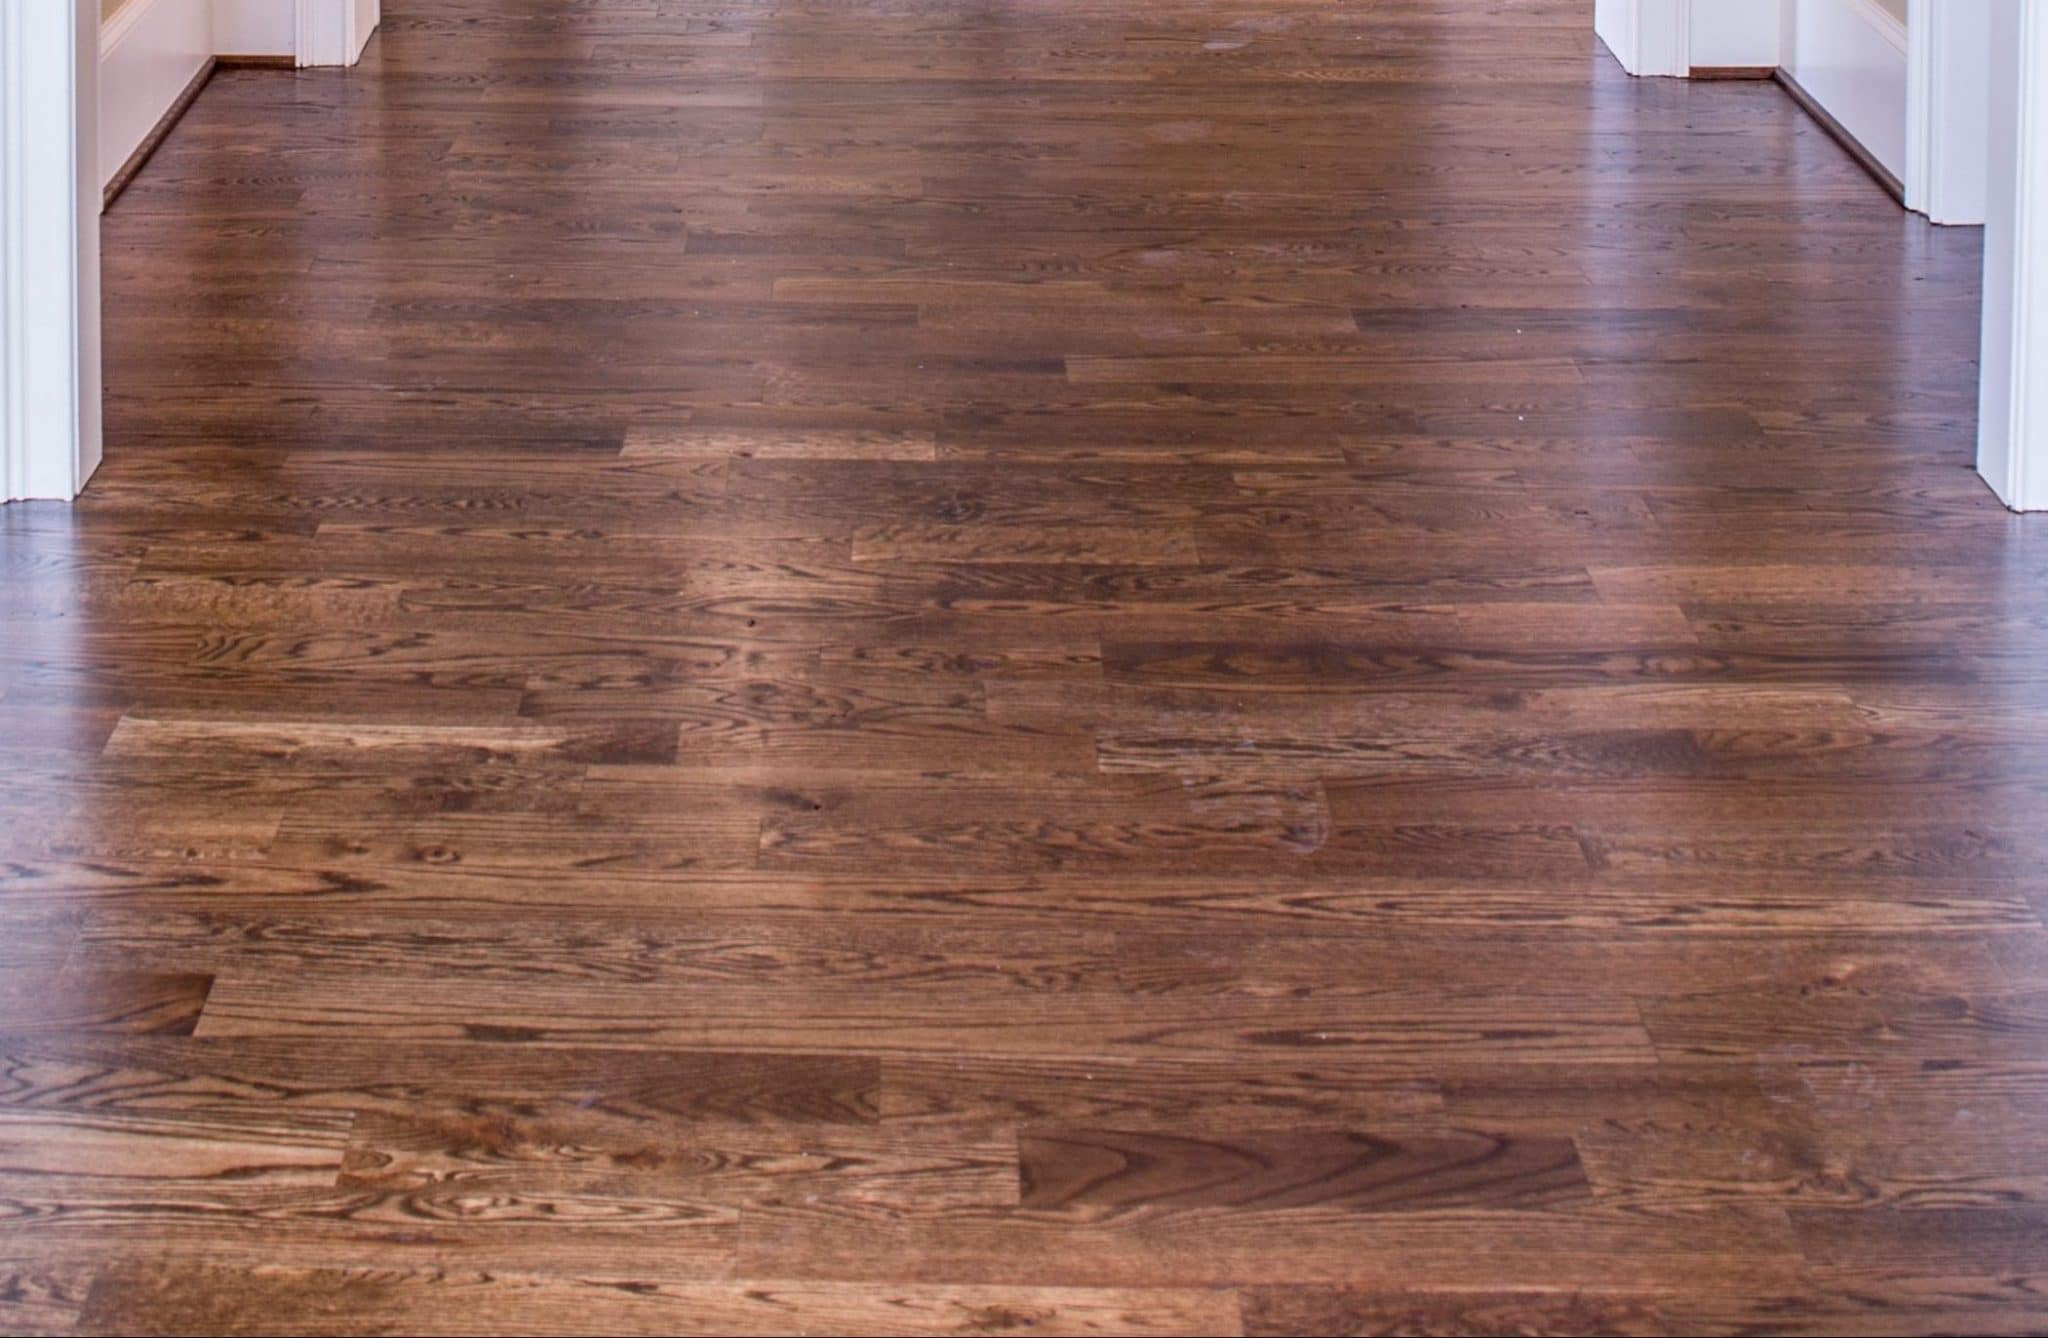 What Do You Use To Clean Hardwood Floors